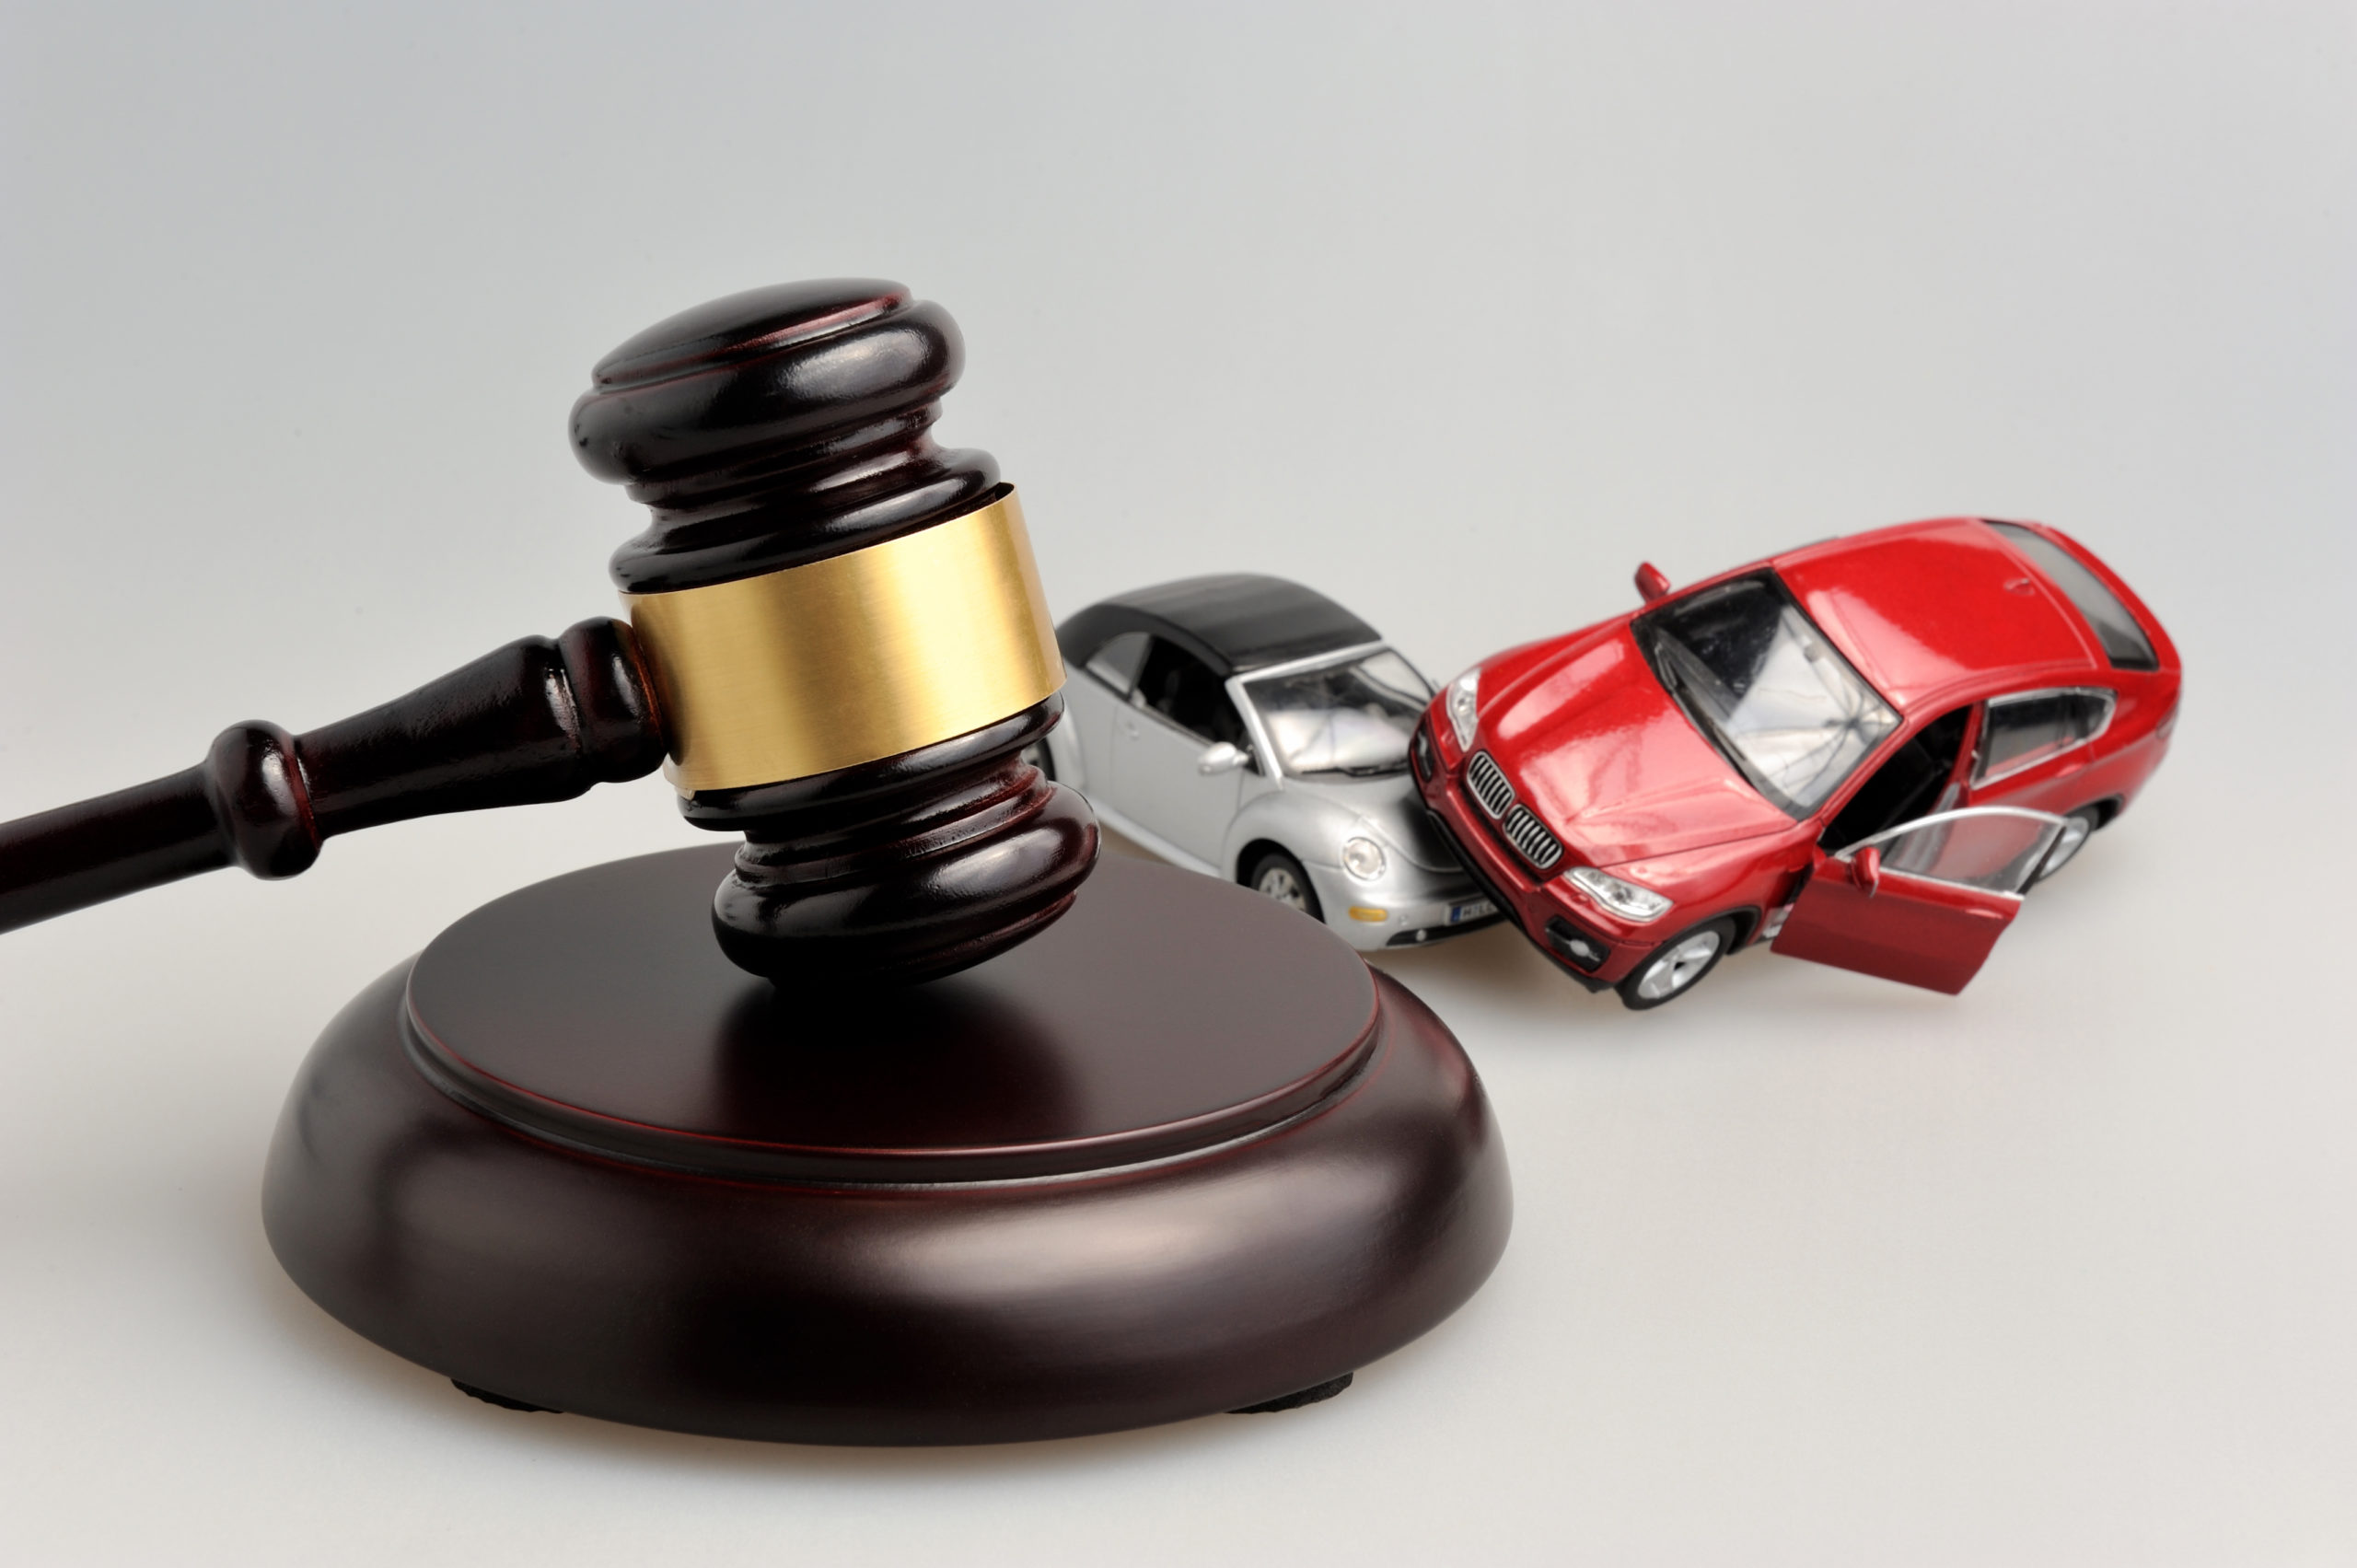 Car accident in Fort Wayn: Get legal help in time